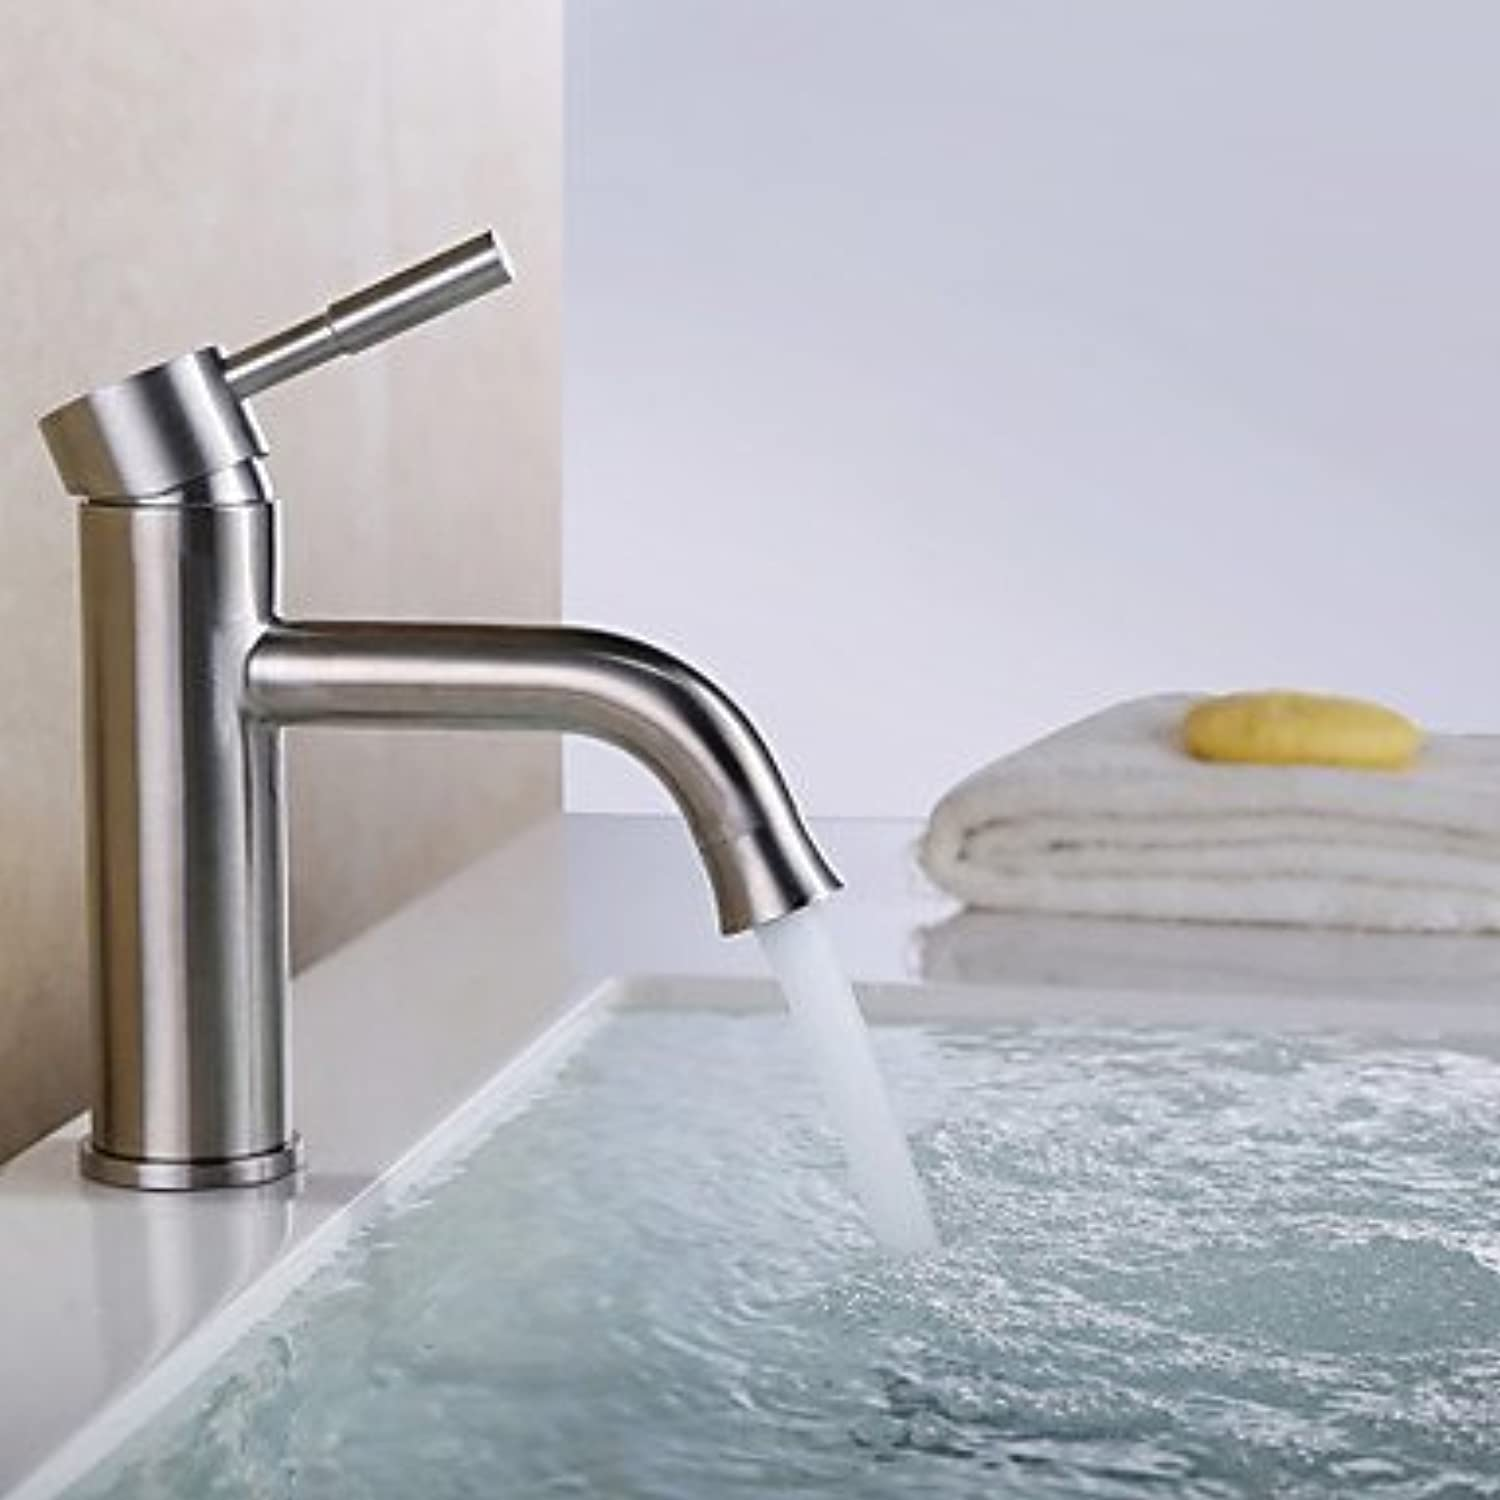 Brushed Stainless Steel Contemporary Waterfall Bathroom Sink Faucet